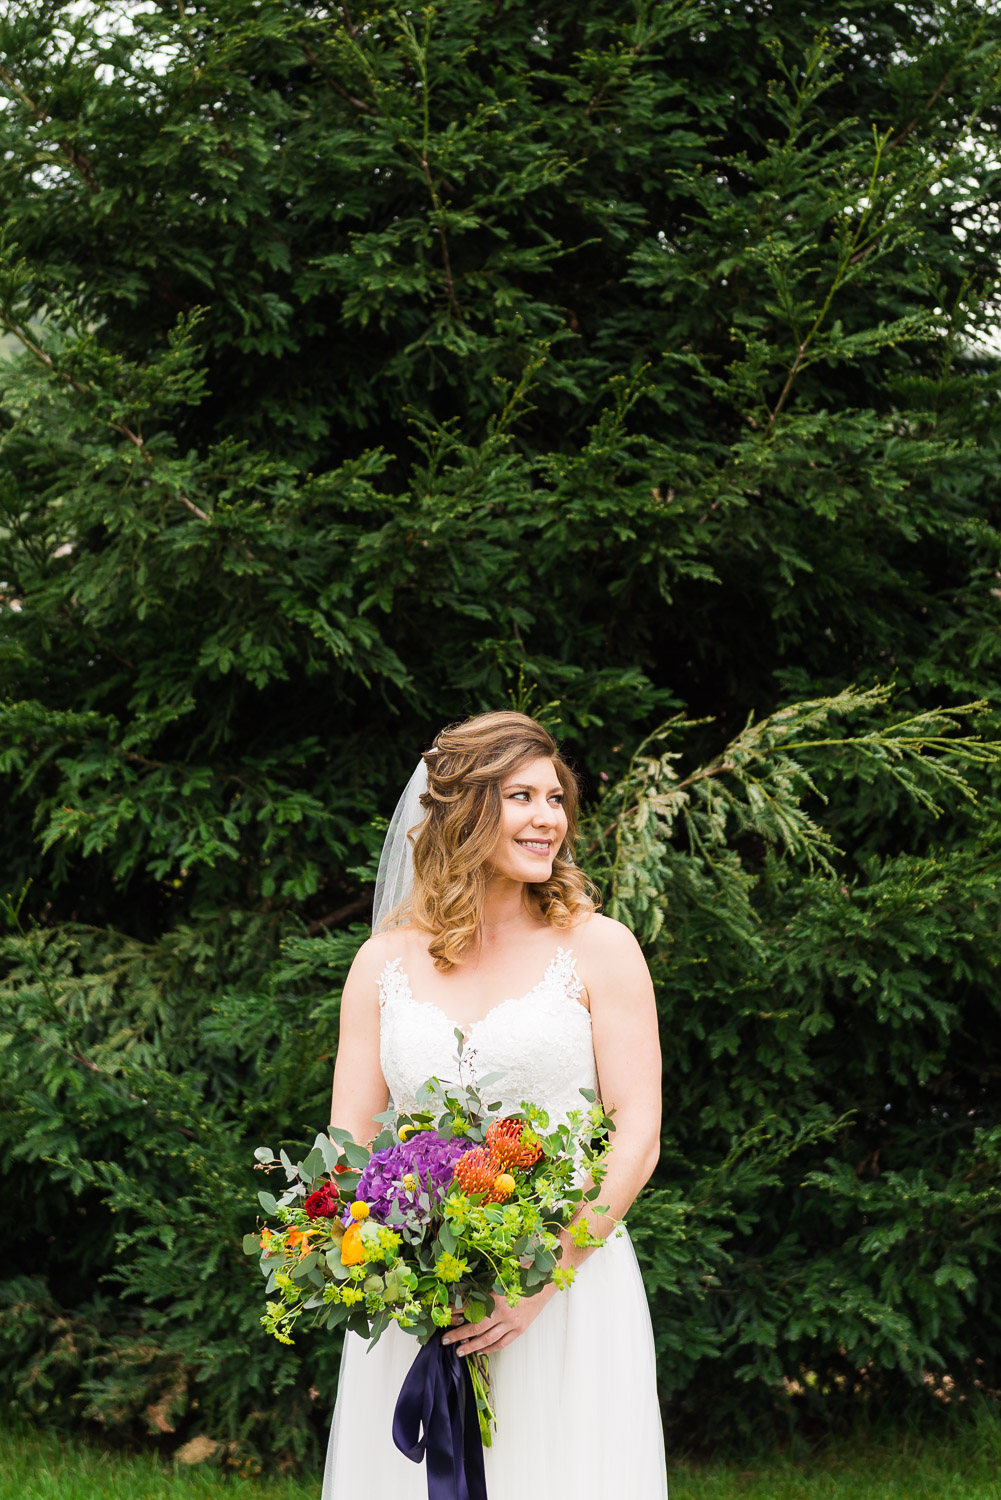 7 Benefits of Working With a Wedding Planner - (skim this if nothing else)1. They help you plan the entire day and correspond with everyone who will be working at your wedding, while everyone else will be focused on how to do their own job.2. They help you figure out how to allocate your budget so you can keep things in line with your vision without going overboard.3. They can help you narrow down your search for vendors, saving you hours of time searching online and finding endless options.4. They know what's new and fresh in the events world so you won't just be repeating trends. They can also help translate your personal style into your decor and details.5. They can help you coordinate other events like a rehearsal dinner or post-wedding brunch. Need to block hotel rooms? They can do that too!6. They take countless responsibilities off your plate. Too many to list here.7. If something happens on your wedding, you'll probably never know about it. Unless it's major (which is rare), they handle everything professionally and quietly so that everything feels seamless for you and your guests.